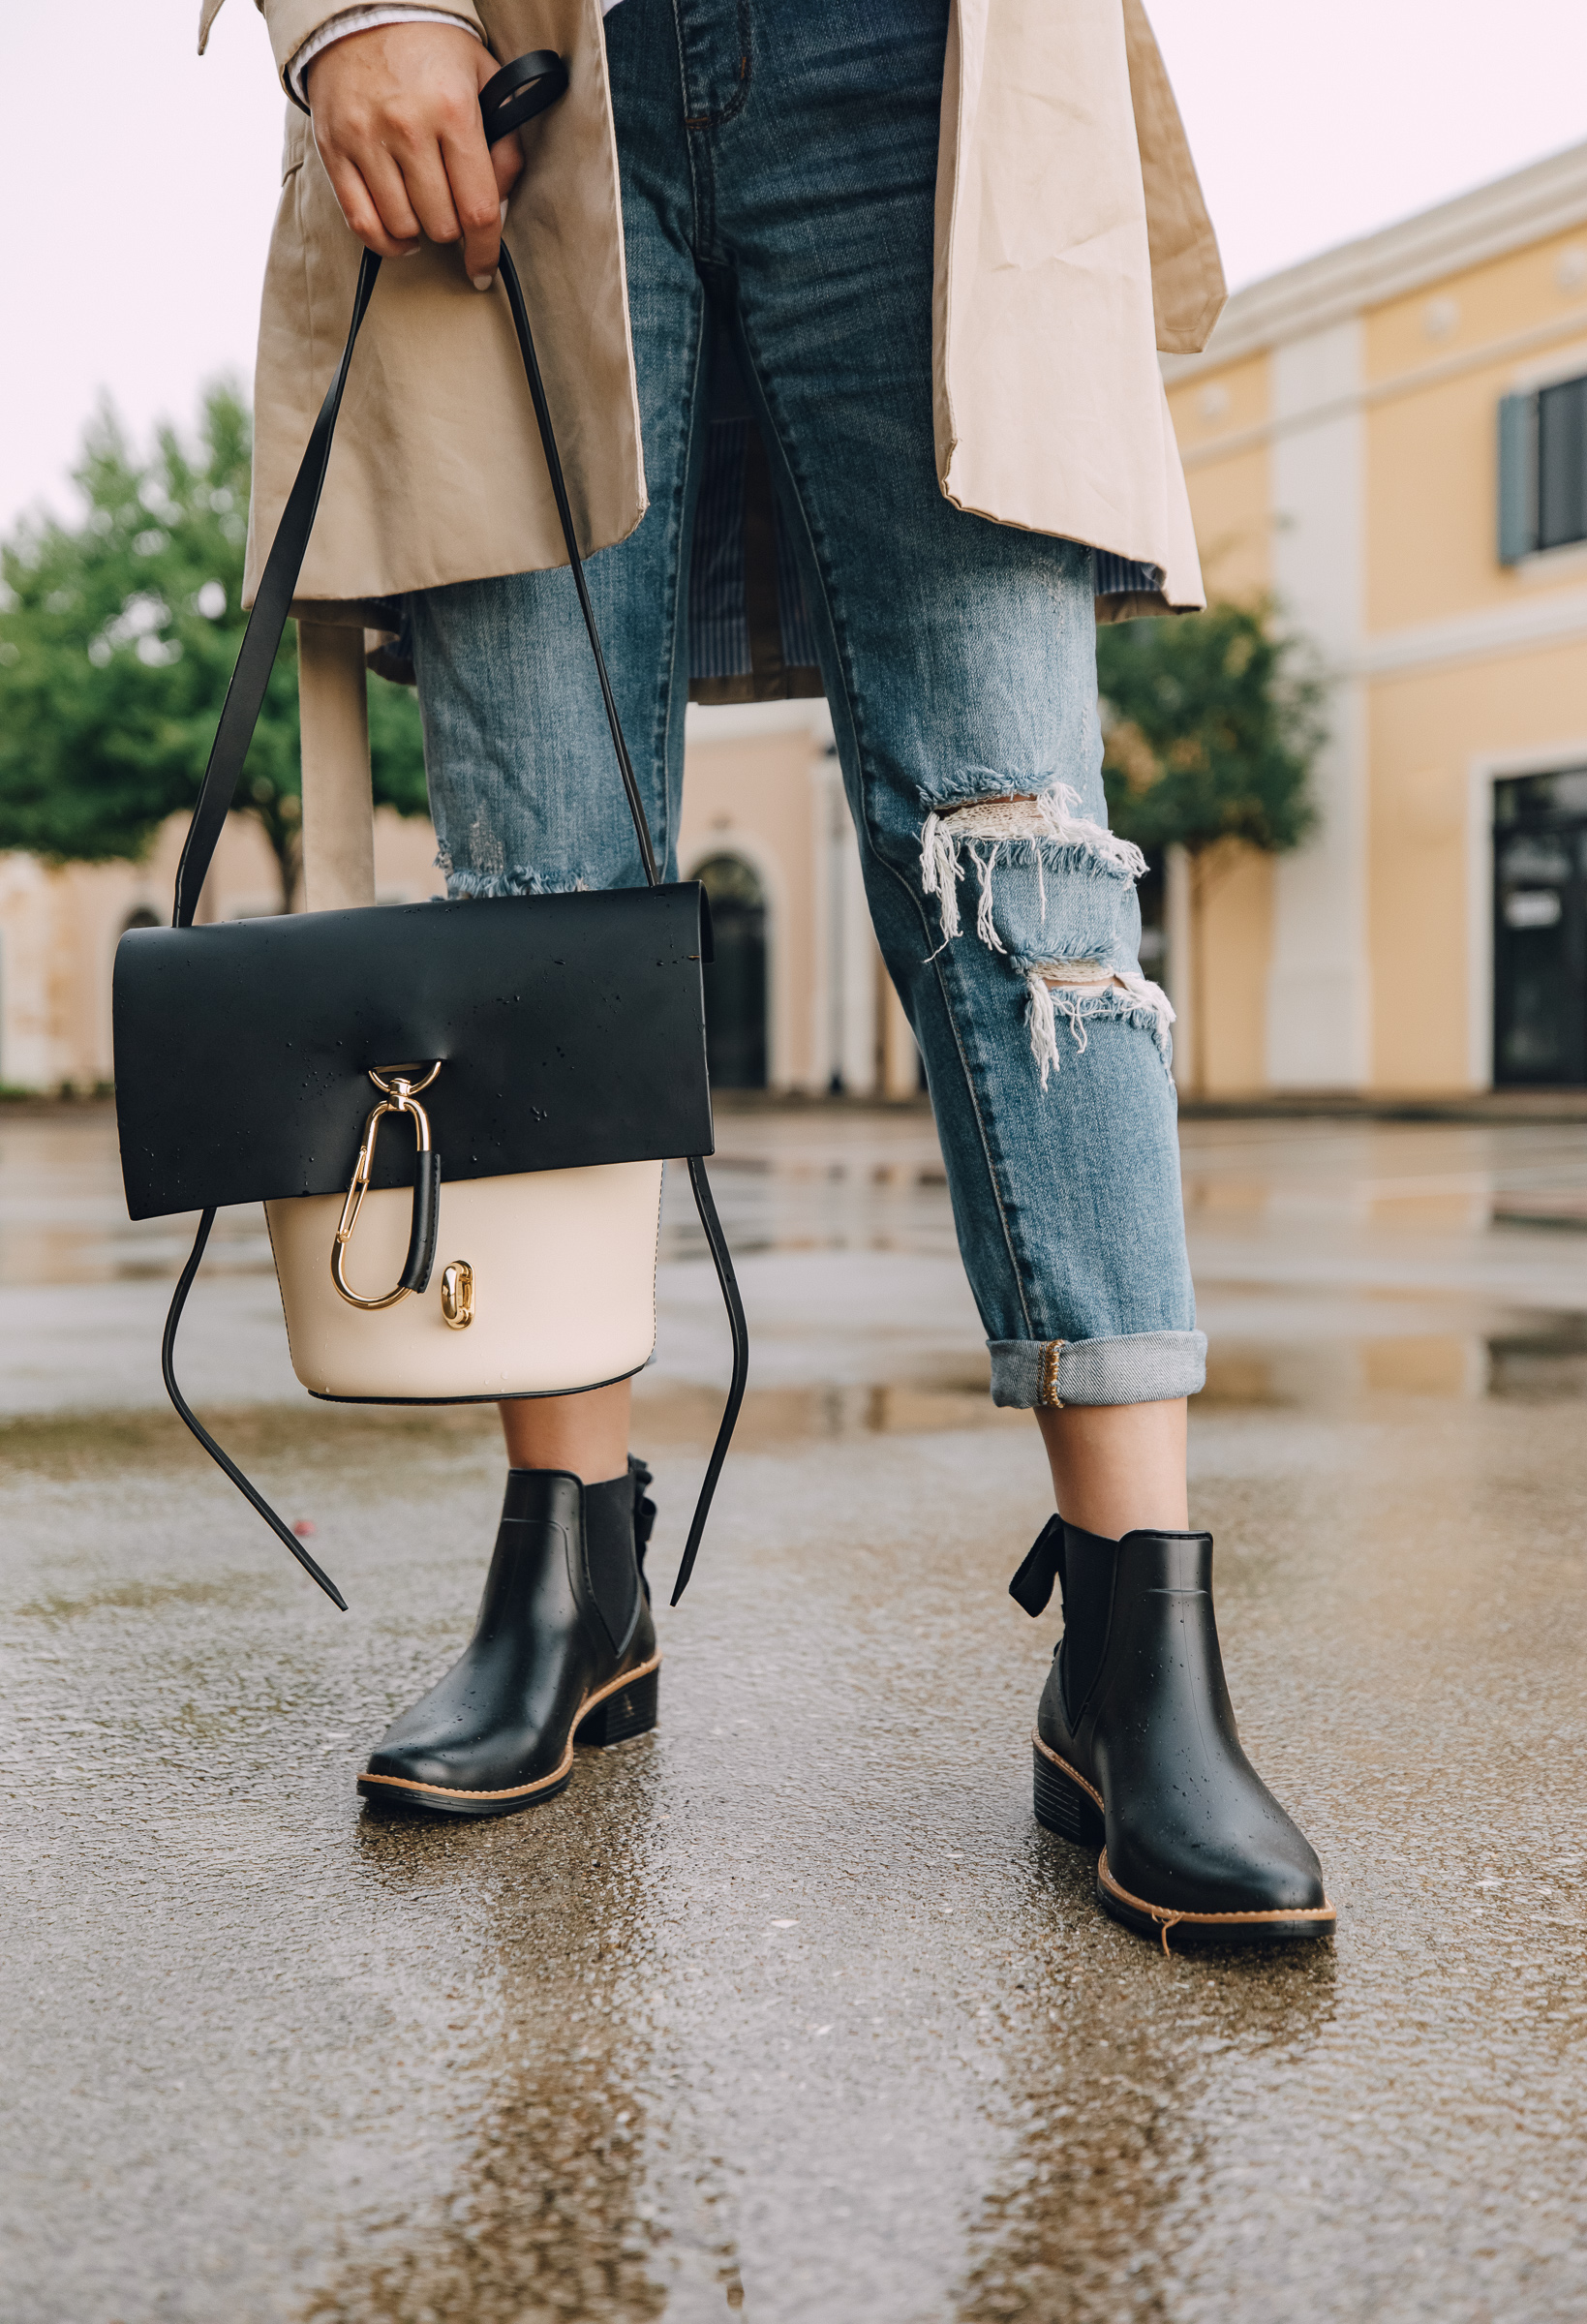 Elly Brown wears a zac posen bag with Bernardo rain boots for a rainy day outfit